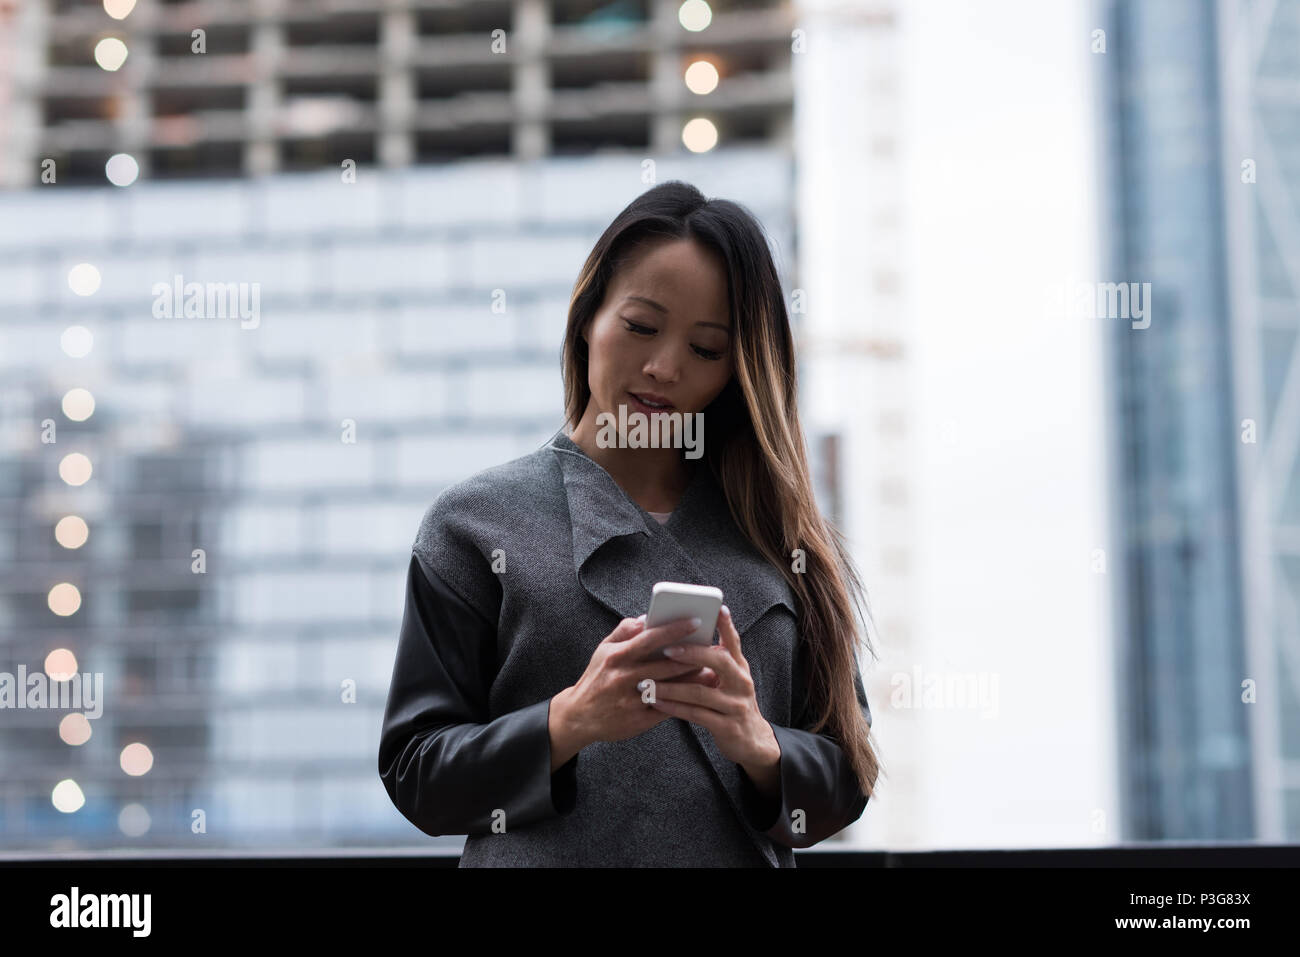 Businesswoman using her mobile phone - Stock Image